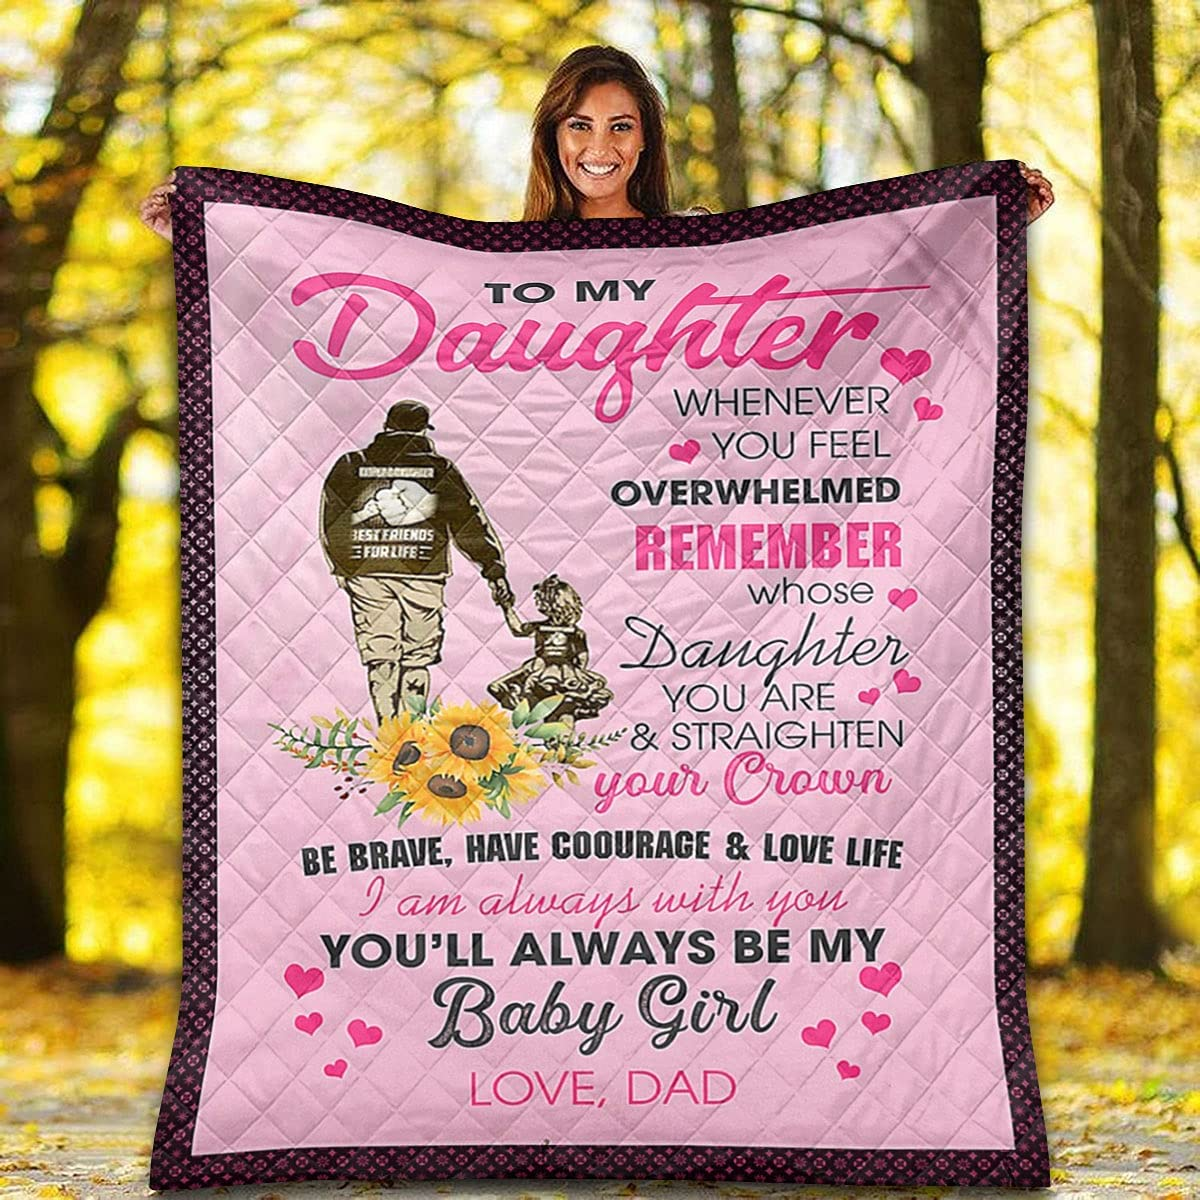 Sunflower Quilt - to My Daughter B mart Will Be Always Popular brand You